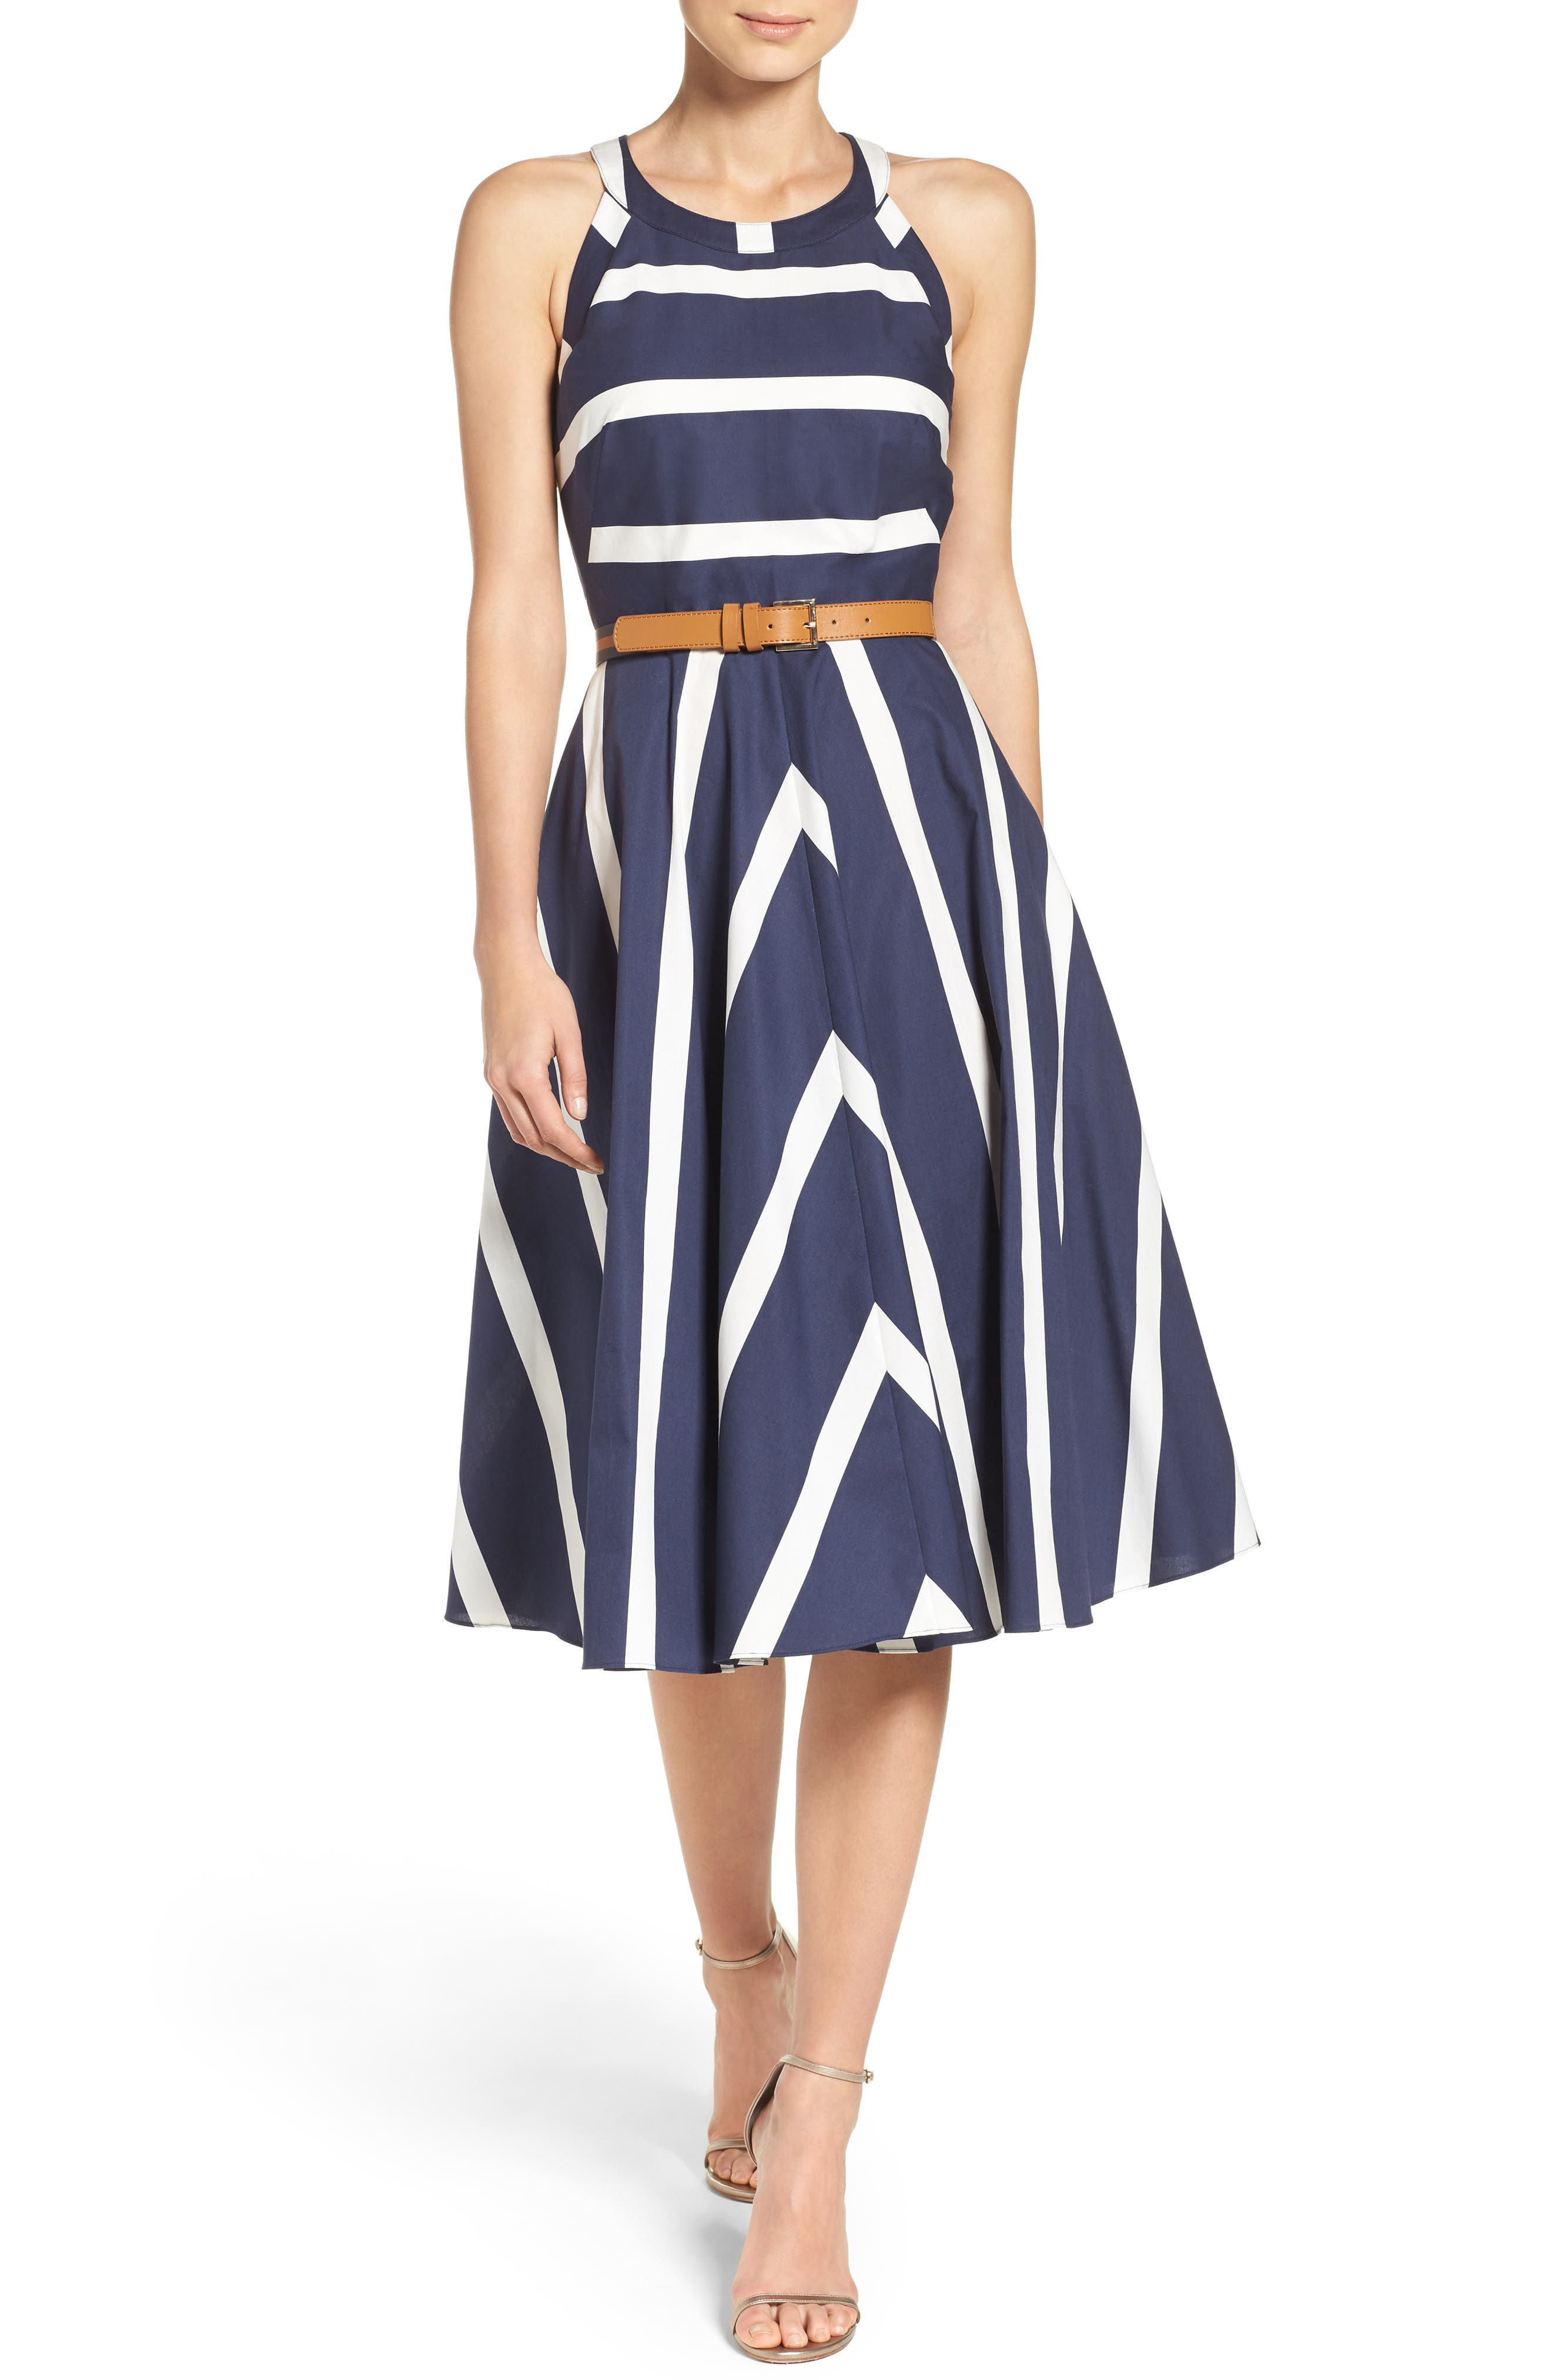 Alternate Image 1 Selected - Eliza J Stripe Fit & Flare Dress (Regular & Petite)